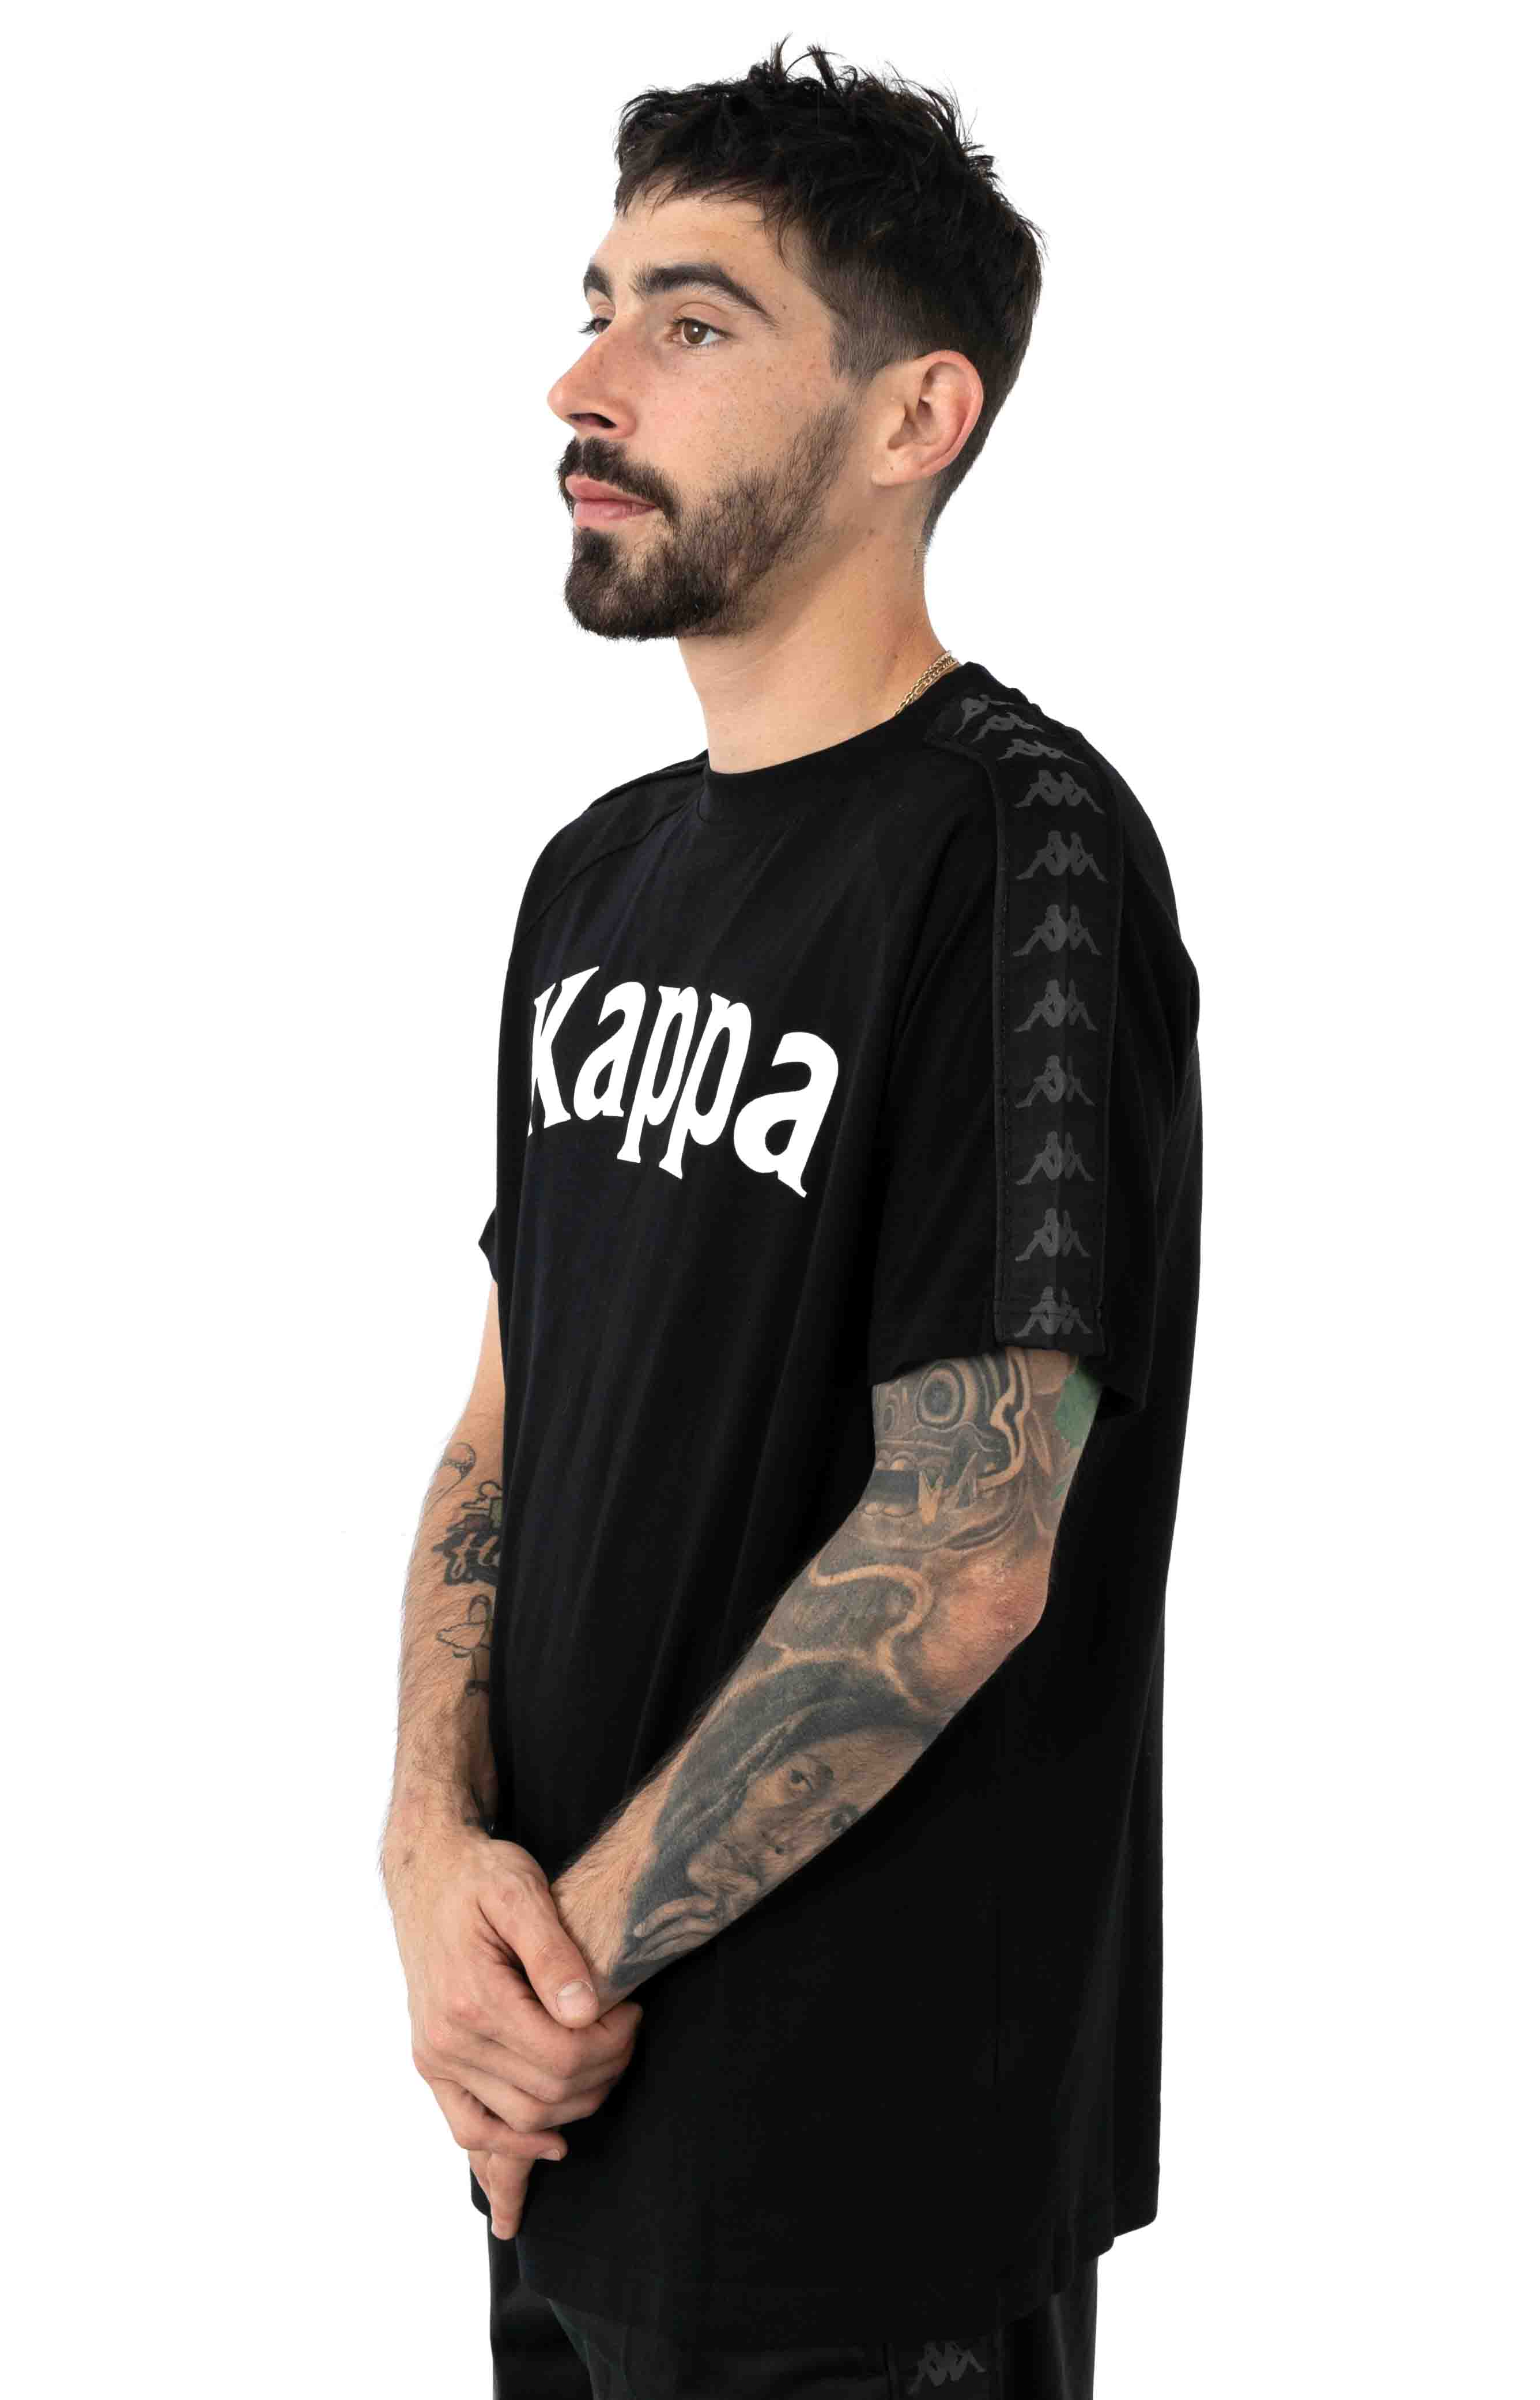 222 Banda Balima T-Shirt - Black/White 2